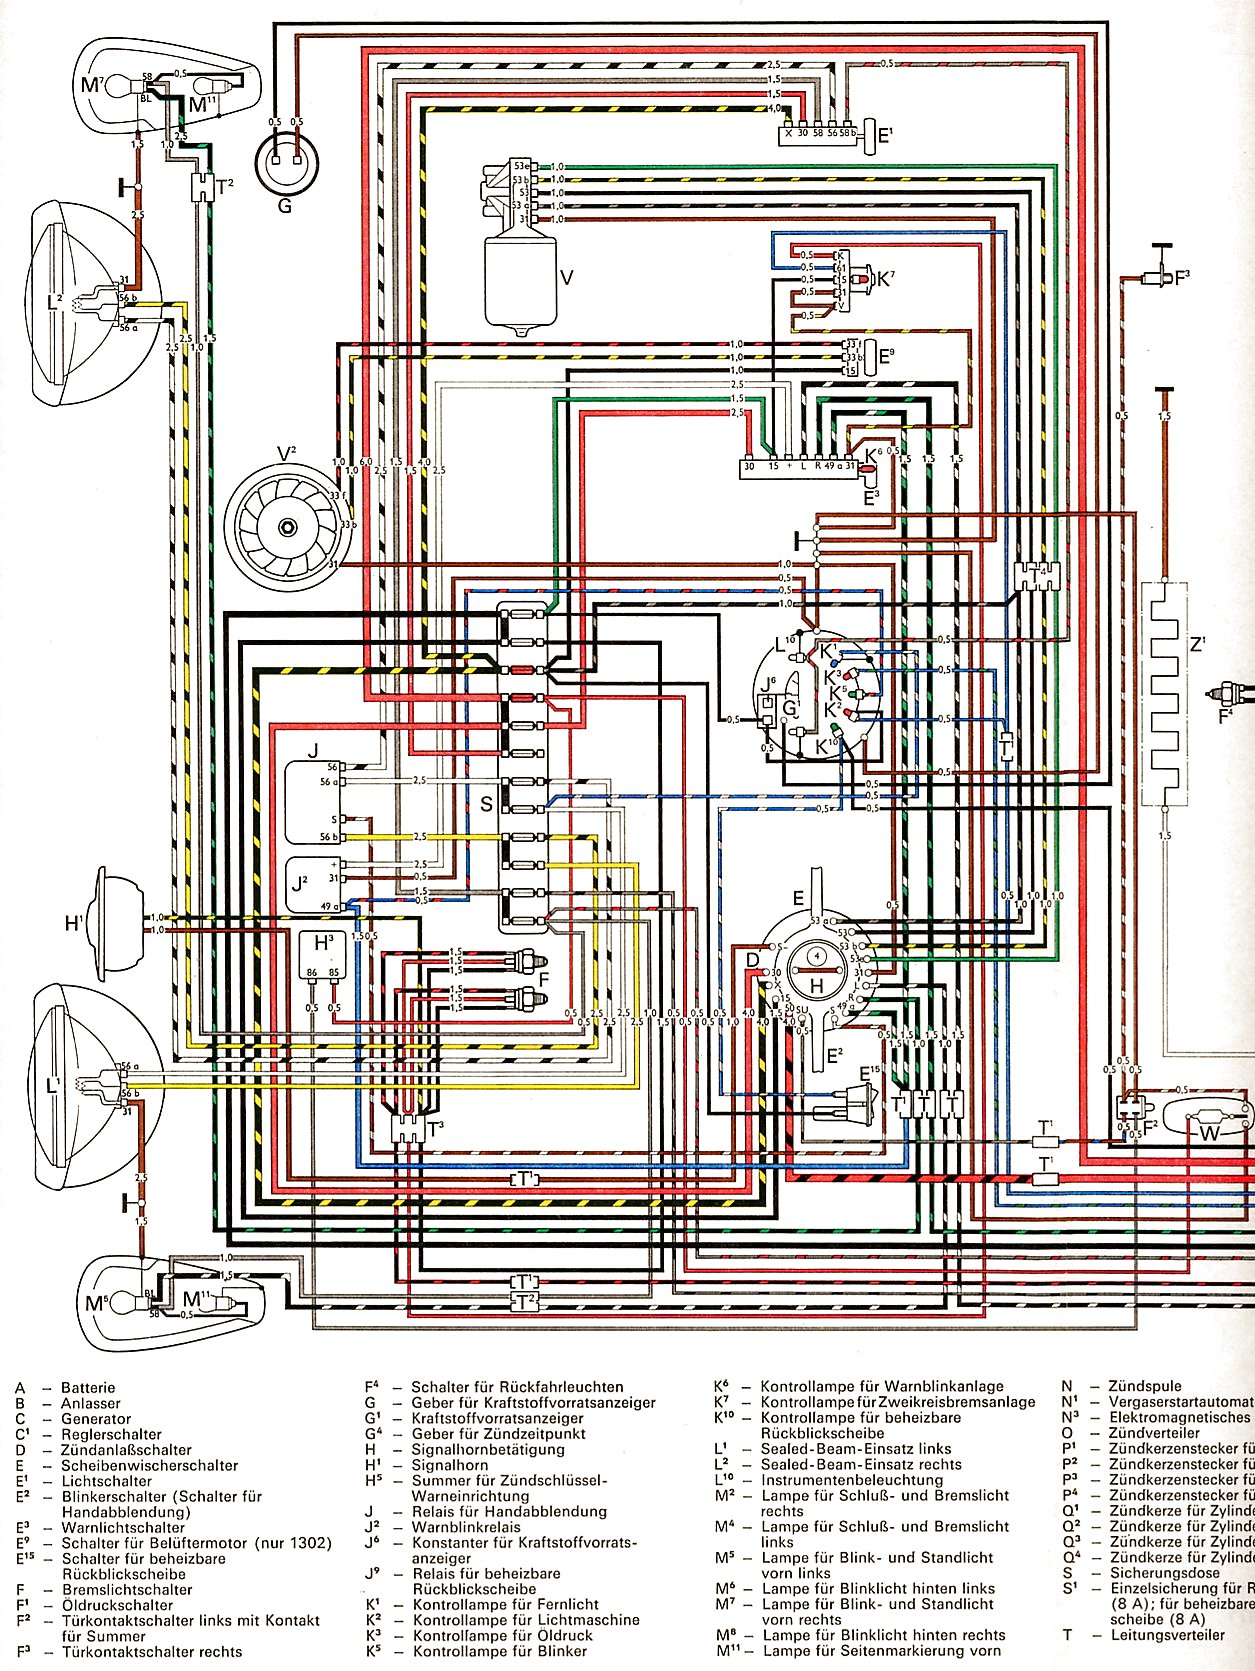 1300_and_1302_USA_from_August_1971 1 vw bug wiring 1969 vw starter wiring diagram \u2022 wiring diagrams j 1971 vw bus wiring diagram at webbmarketing.co